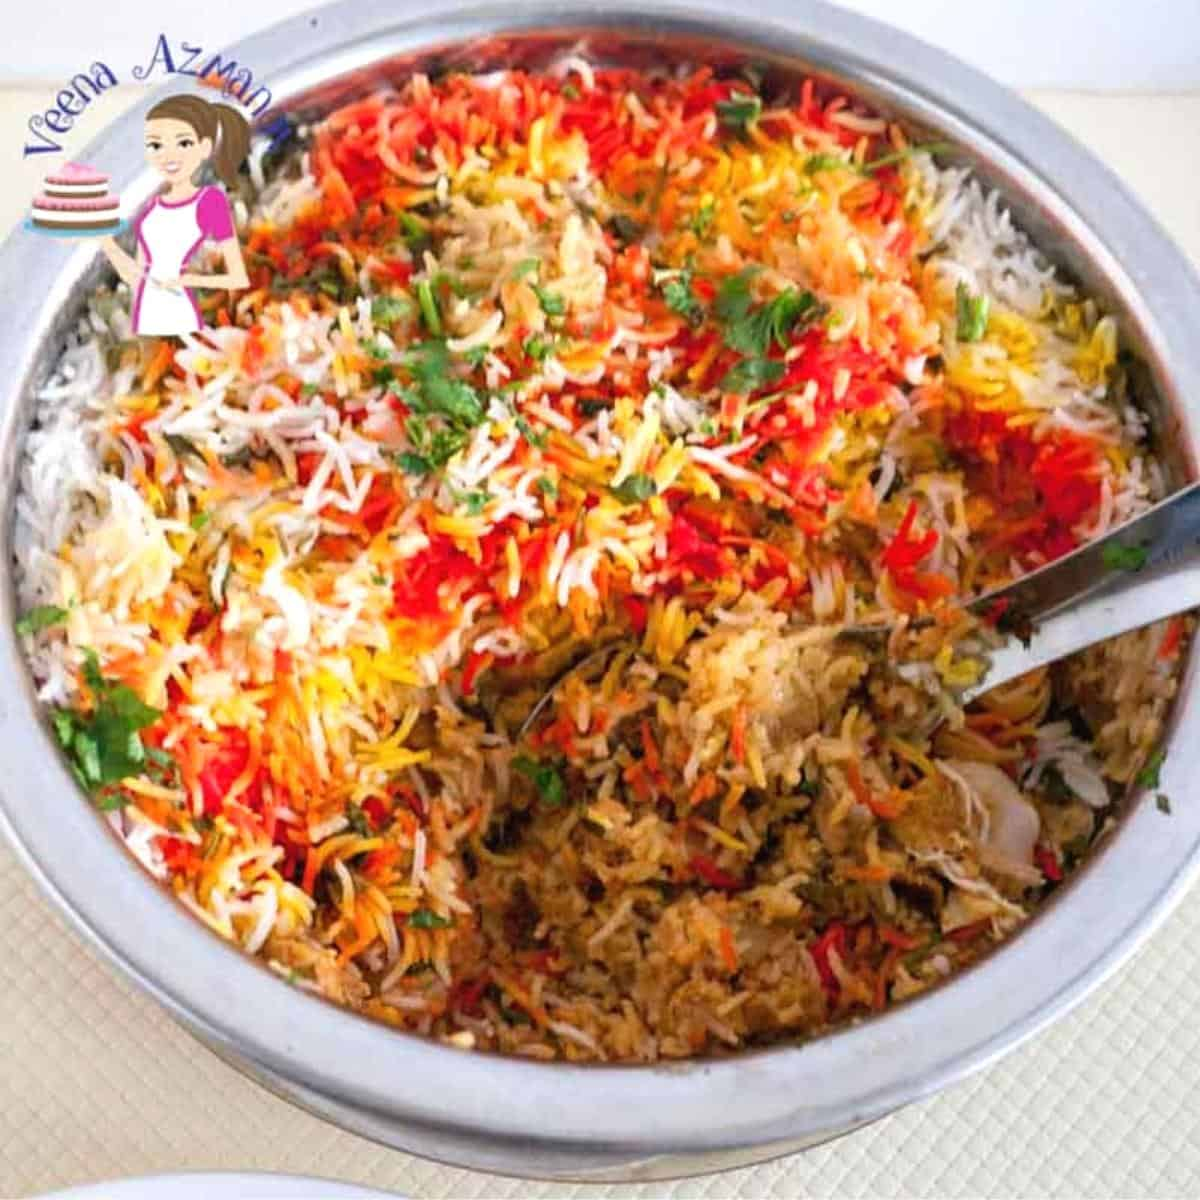 A metal pot with chicken biryani